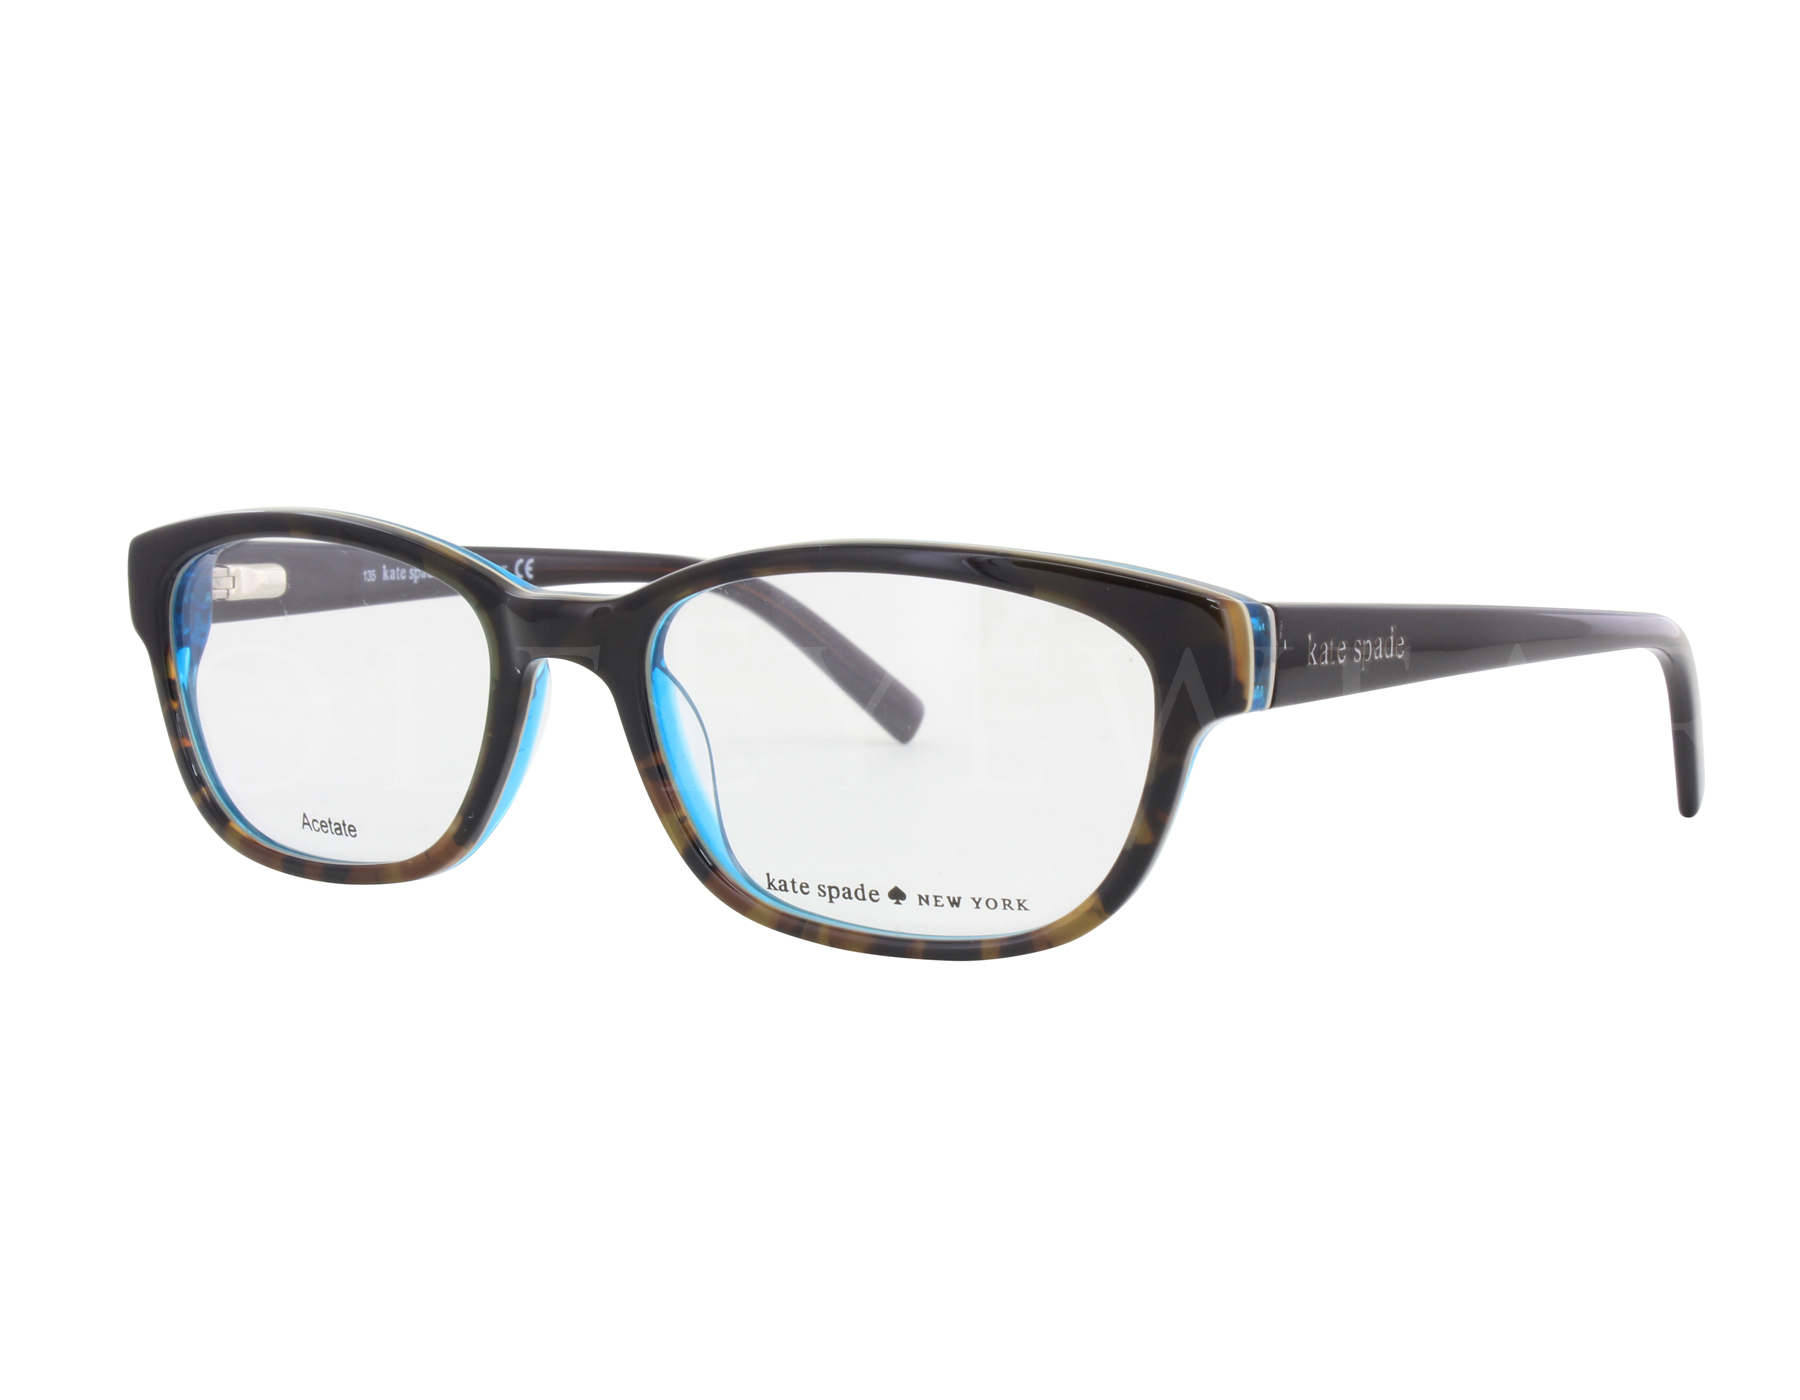 aacc39749864 Details about NEW Kate Spade BLAKELY 0JLM 50mm Tortoise Turquoise Eyeglasses